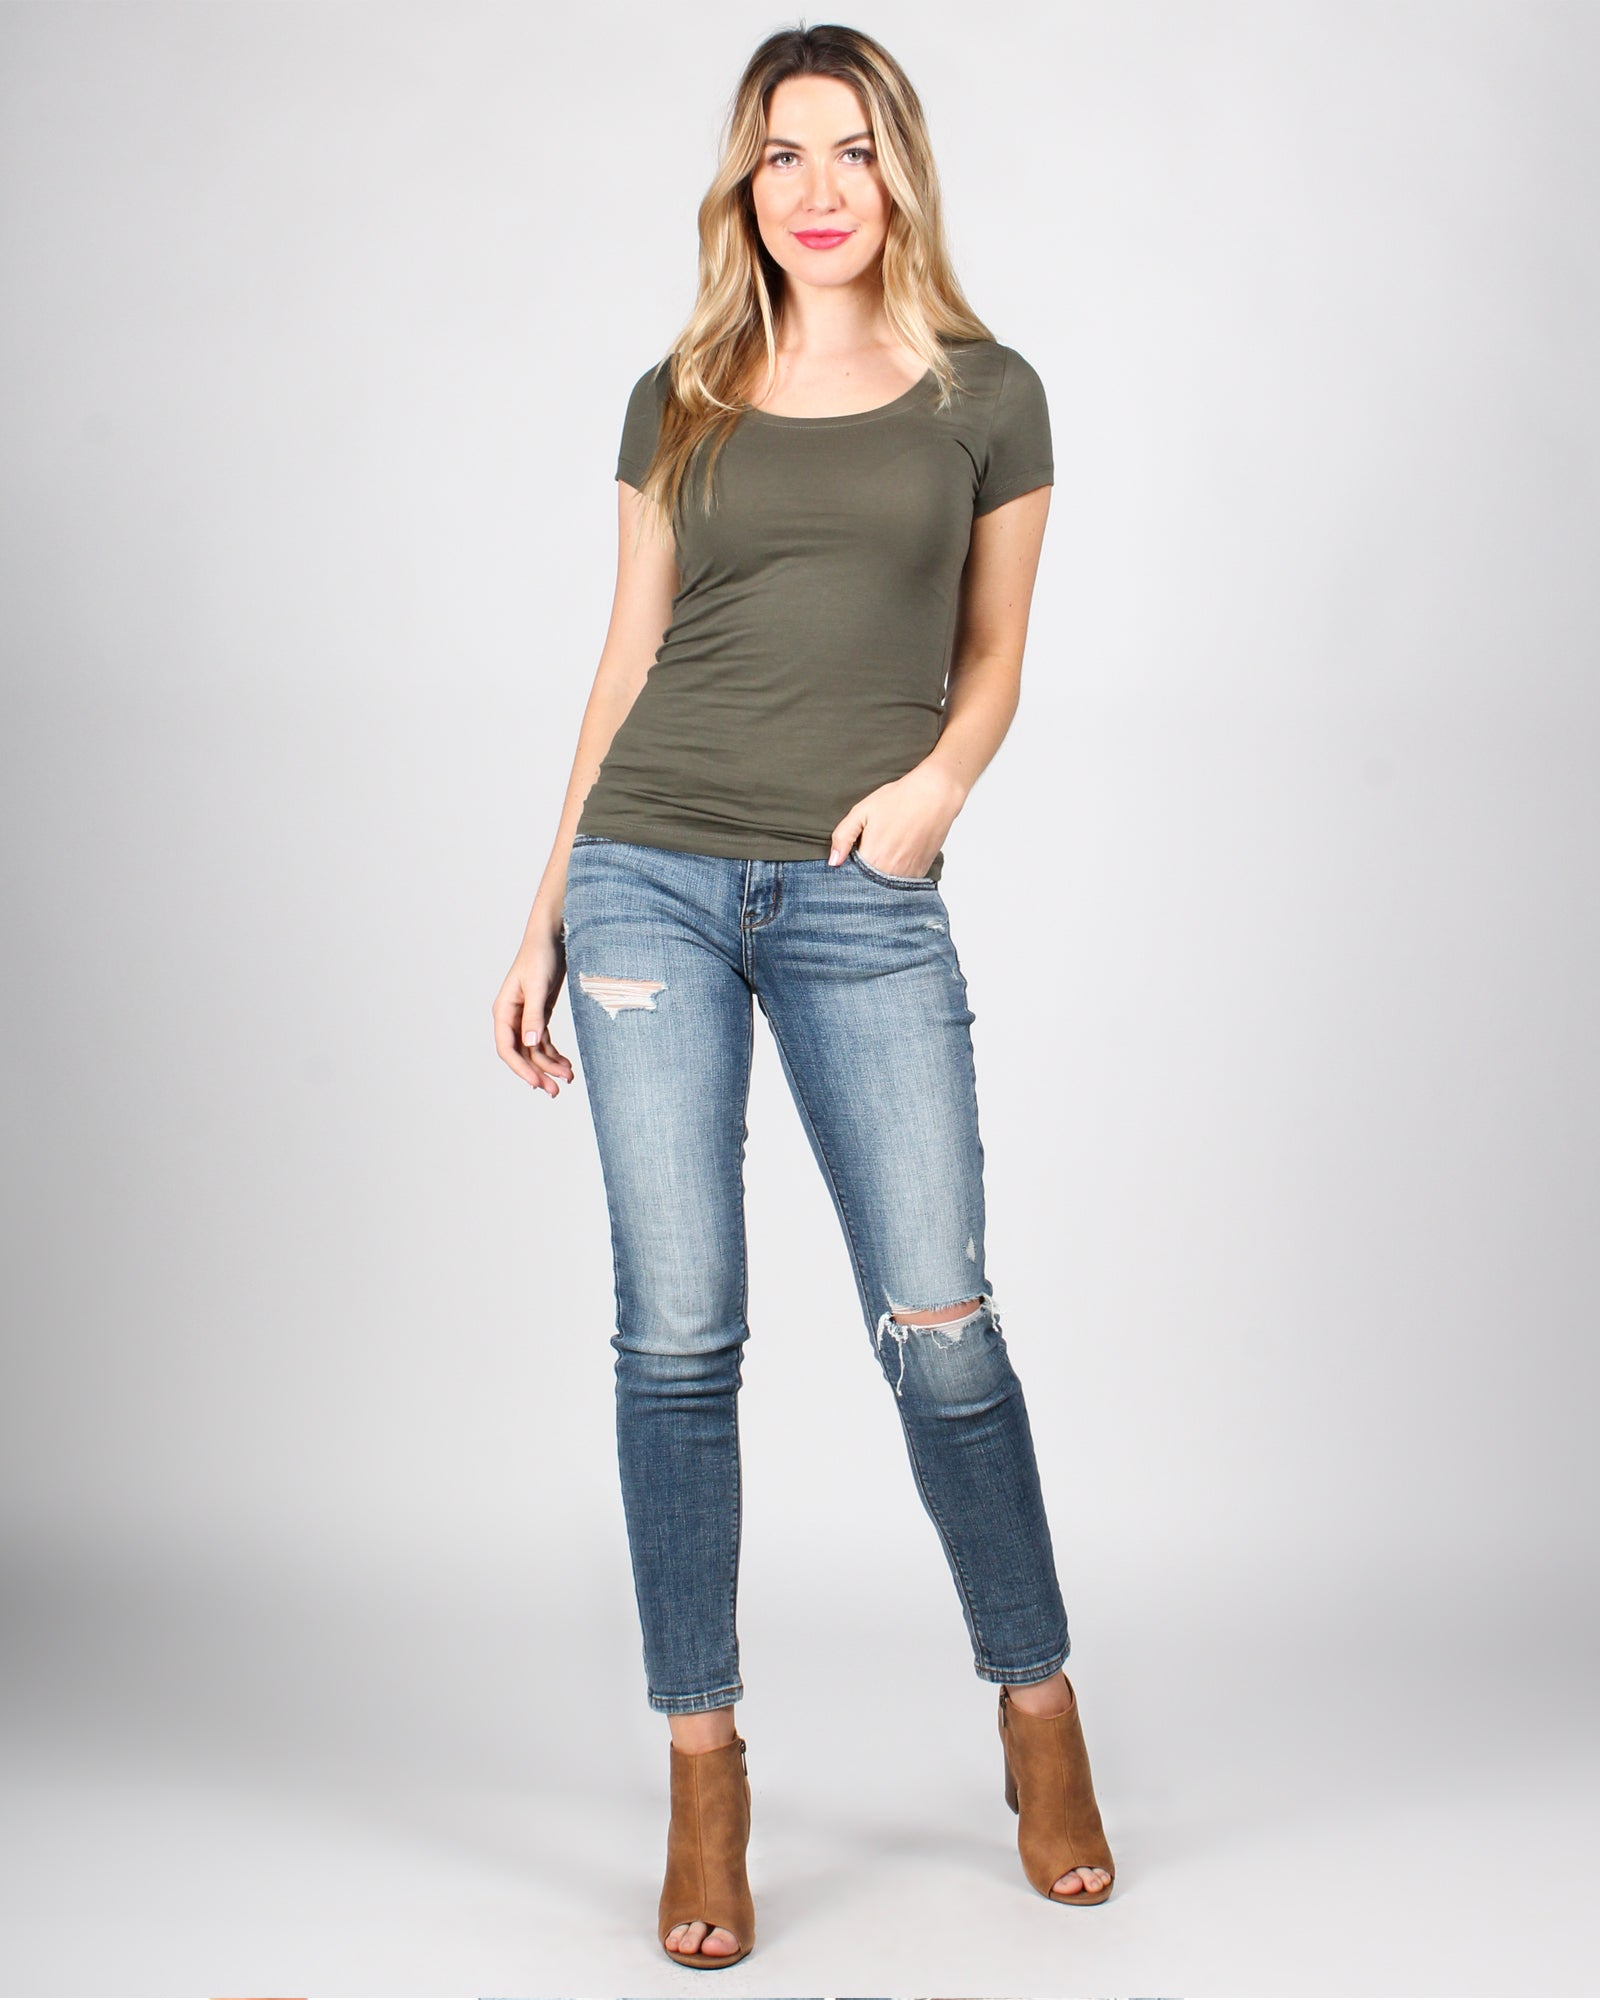 Fashion Q Shop Q The Q Basics: Round Neck Short Sleeve Top (Olive) 8755